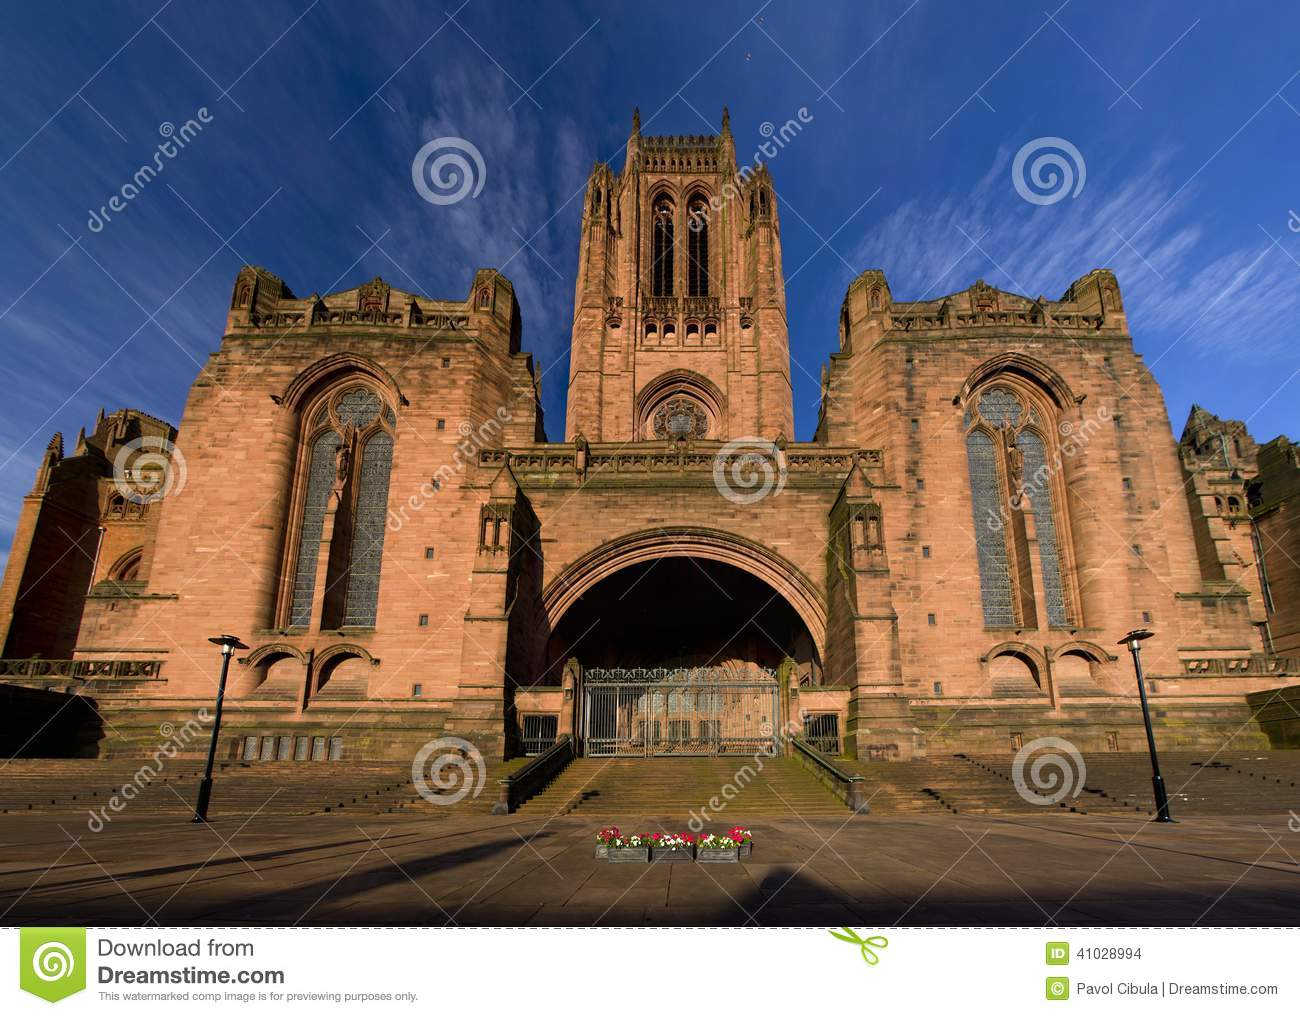 Anglican Cathedral in Liverpool, UK.